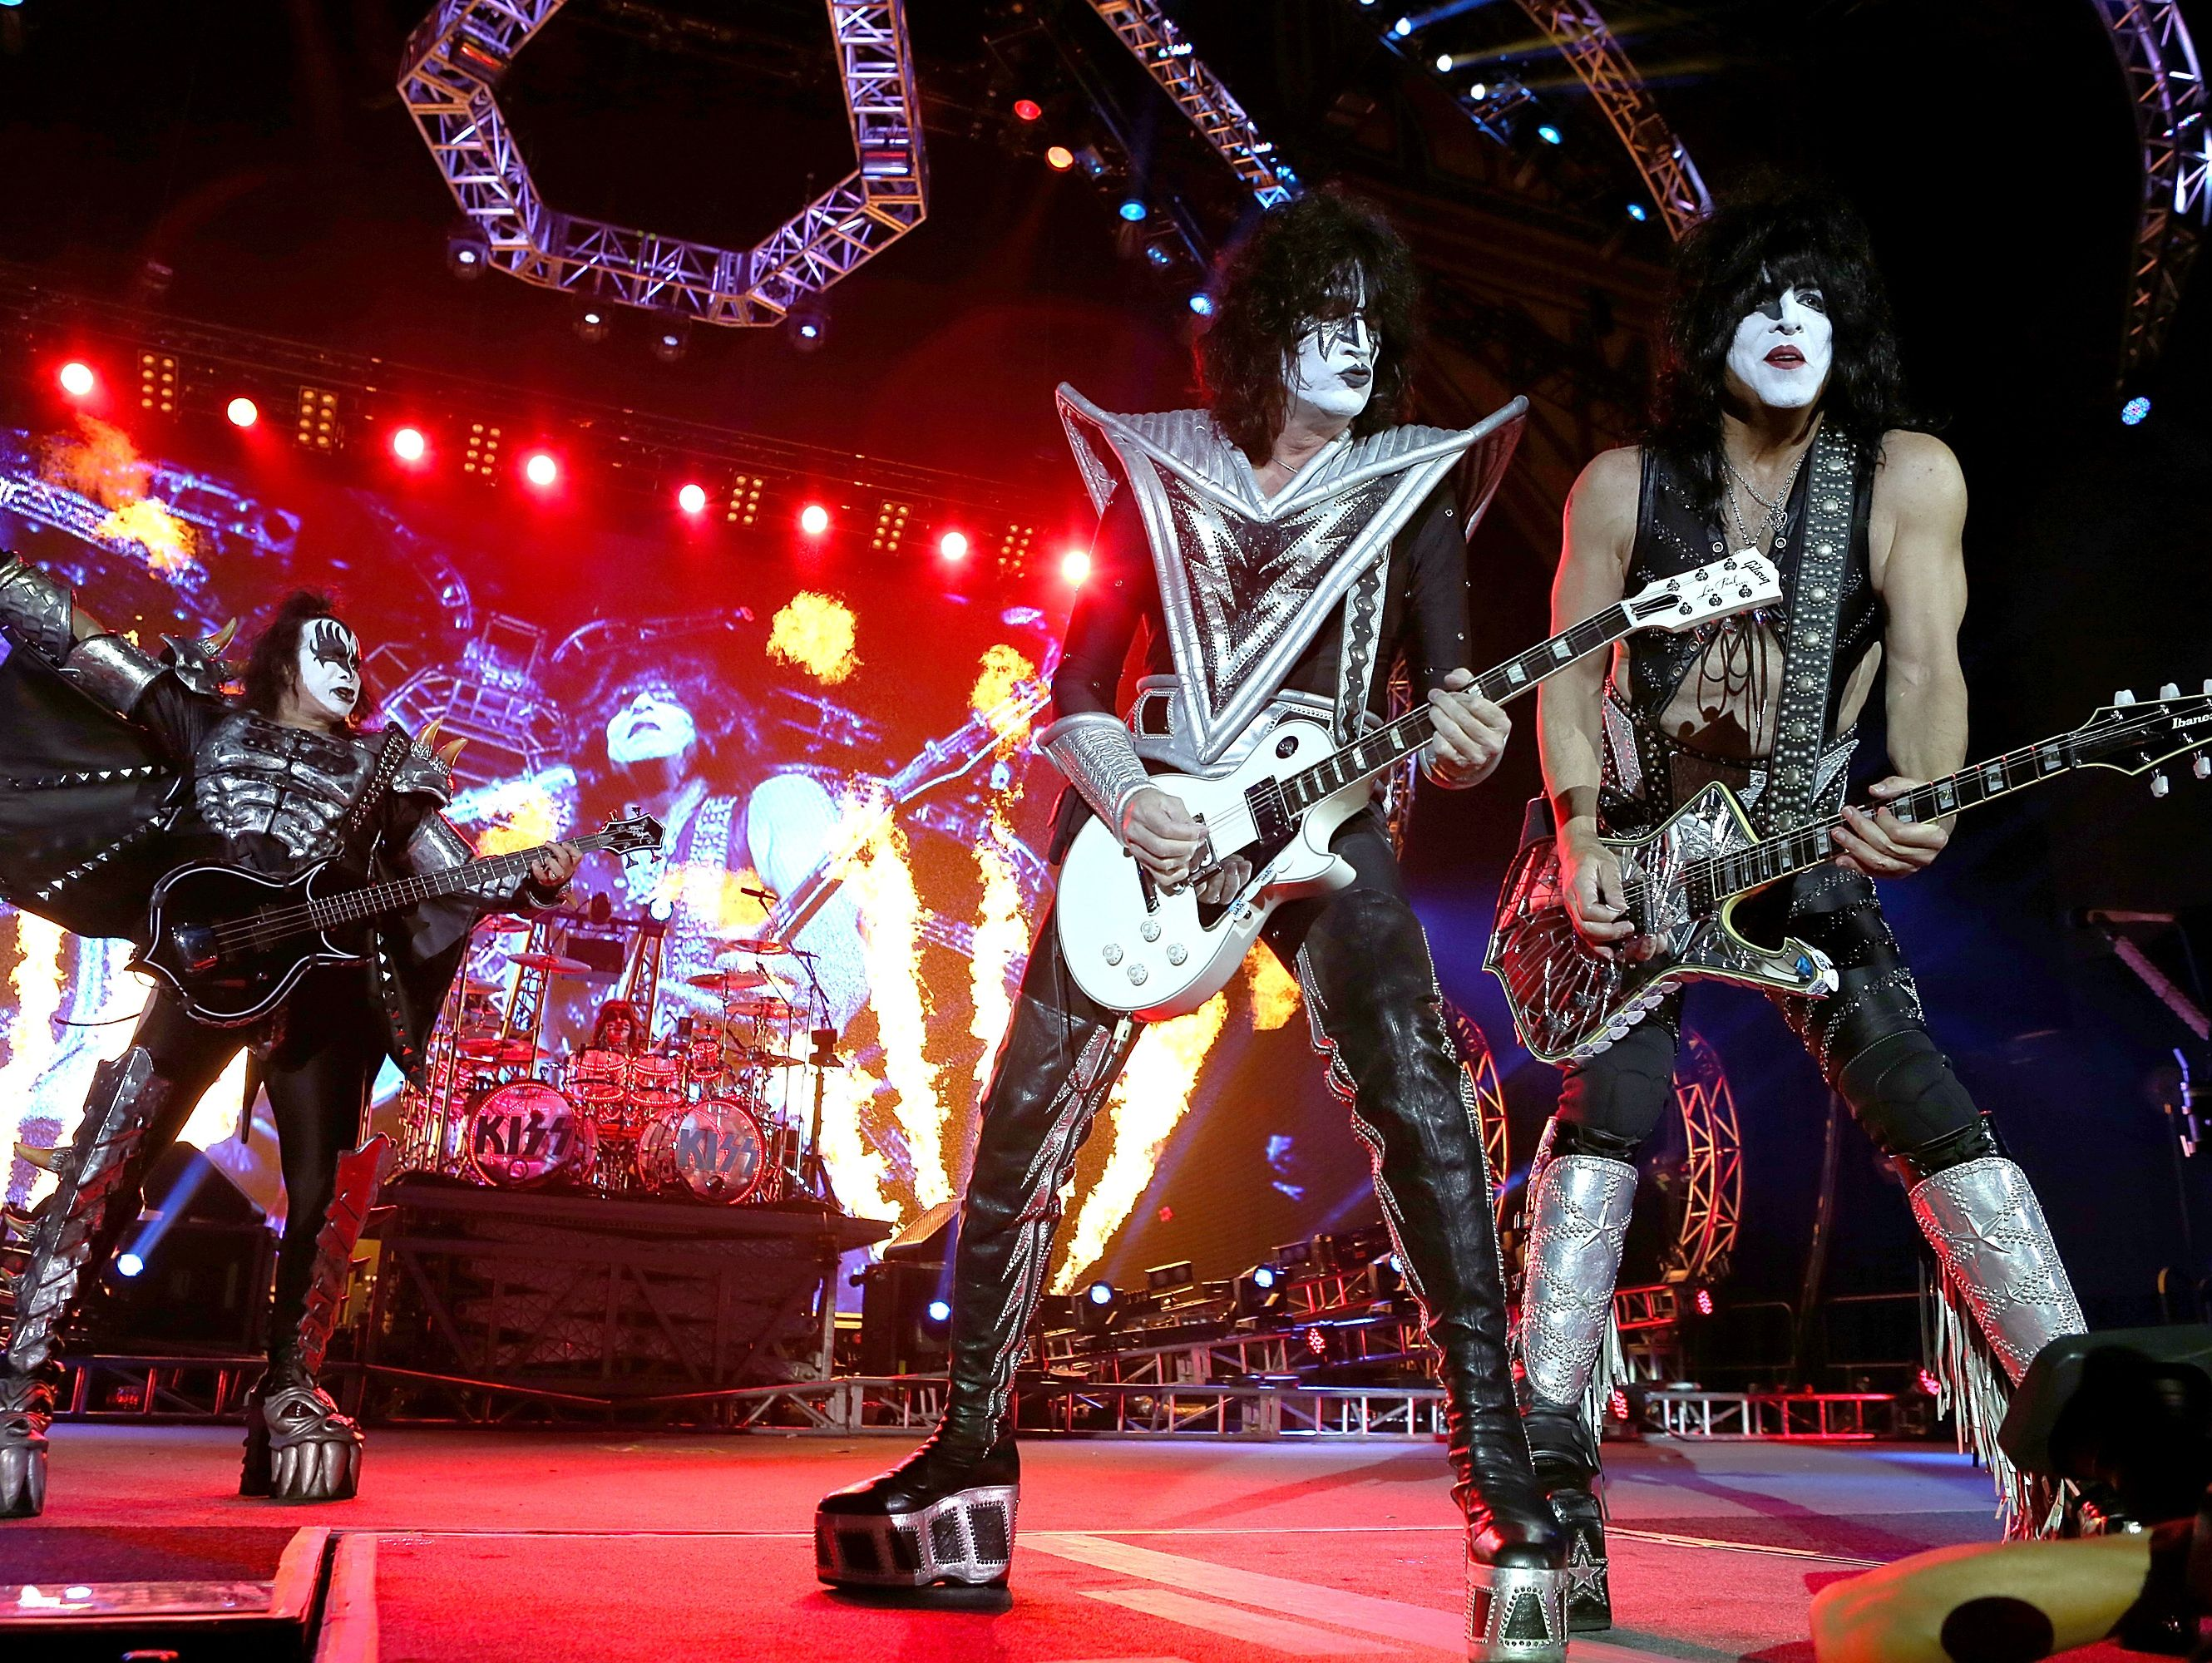 KISS perform during their opening show for the Australian leg of their 40th anniversary world tour at Perth Arena on Oct. 3, 2015, in Perth, Australia.